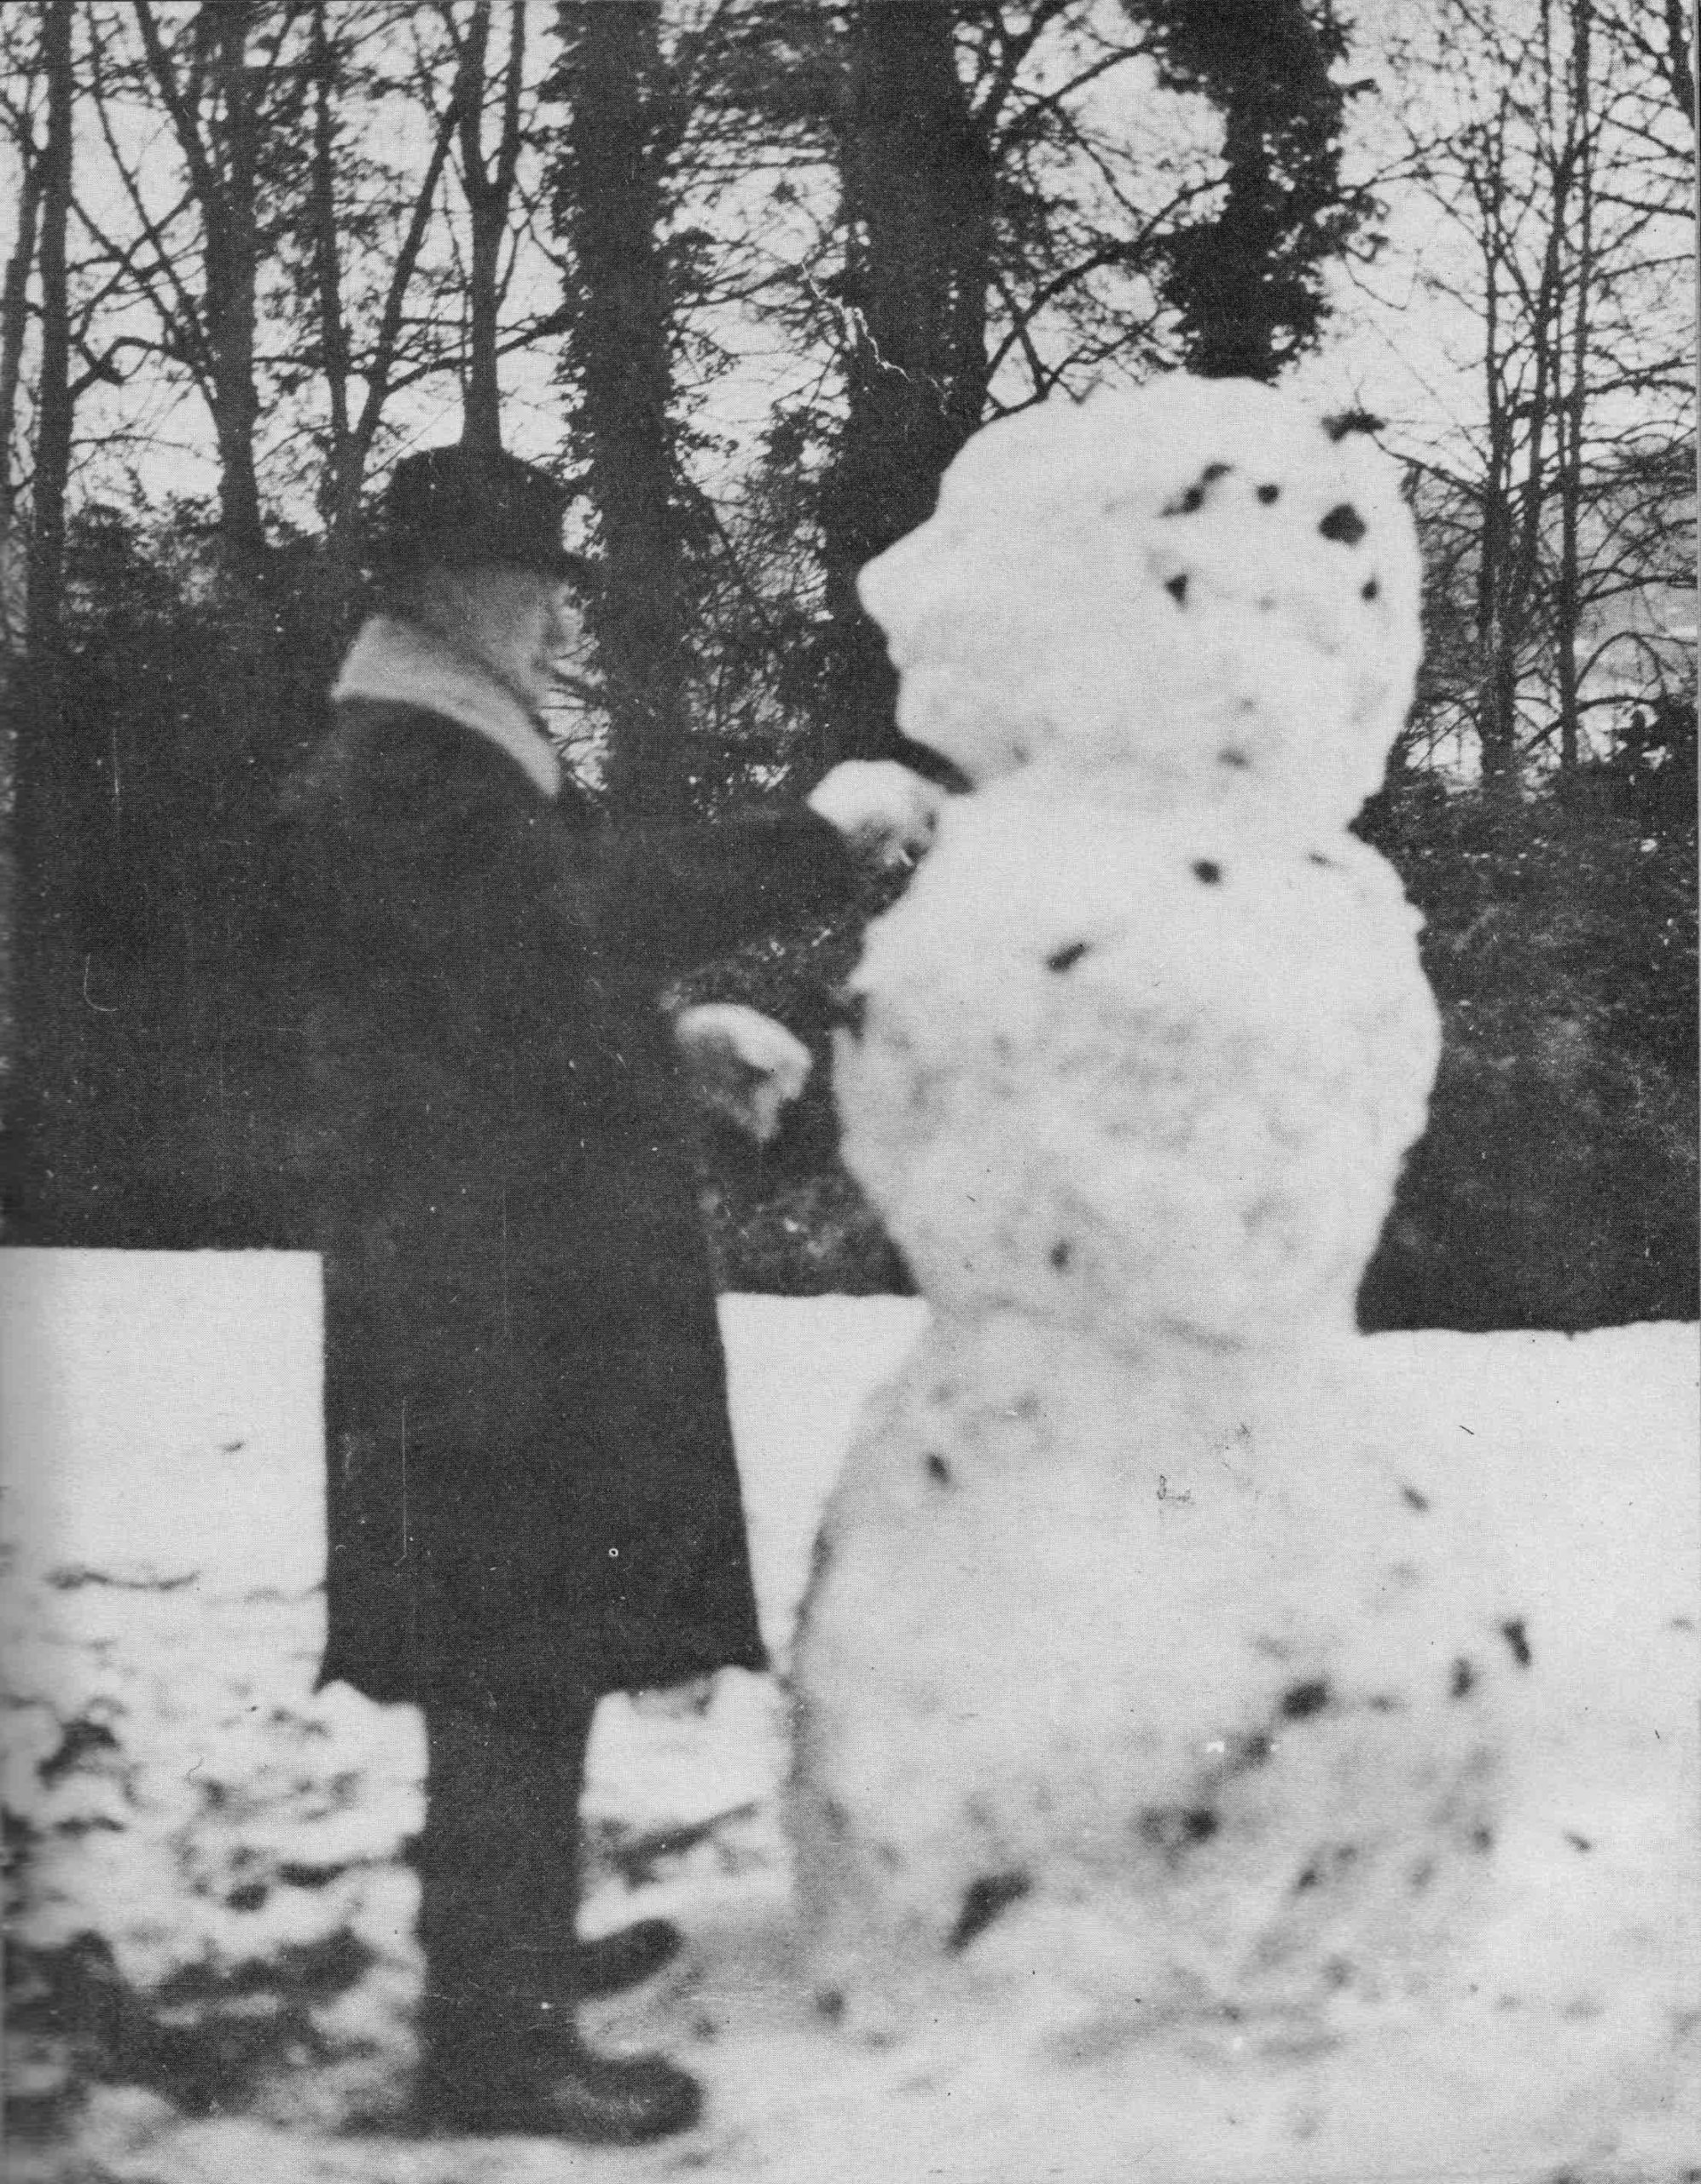 Churchill and snowman